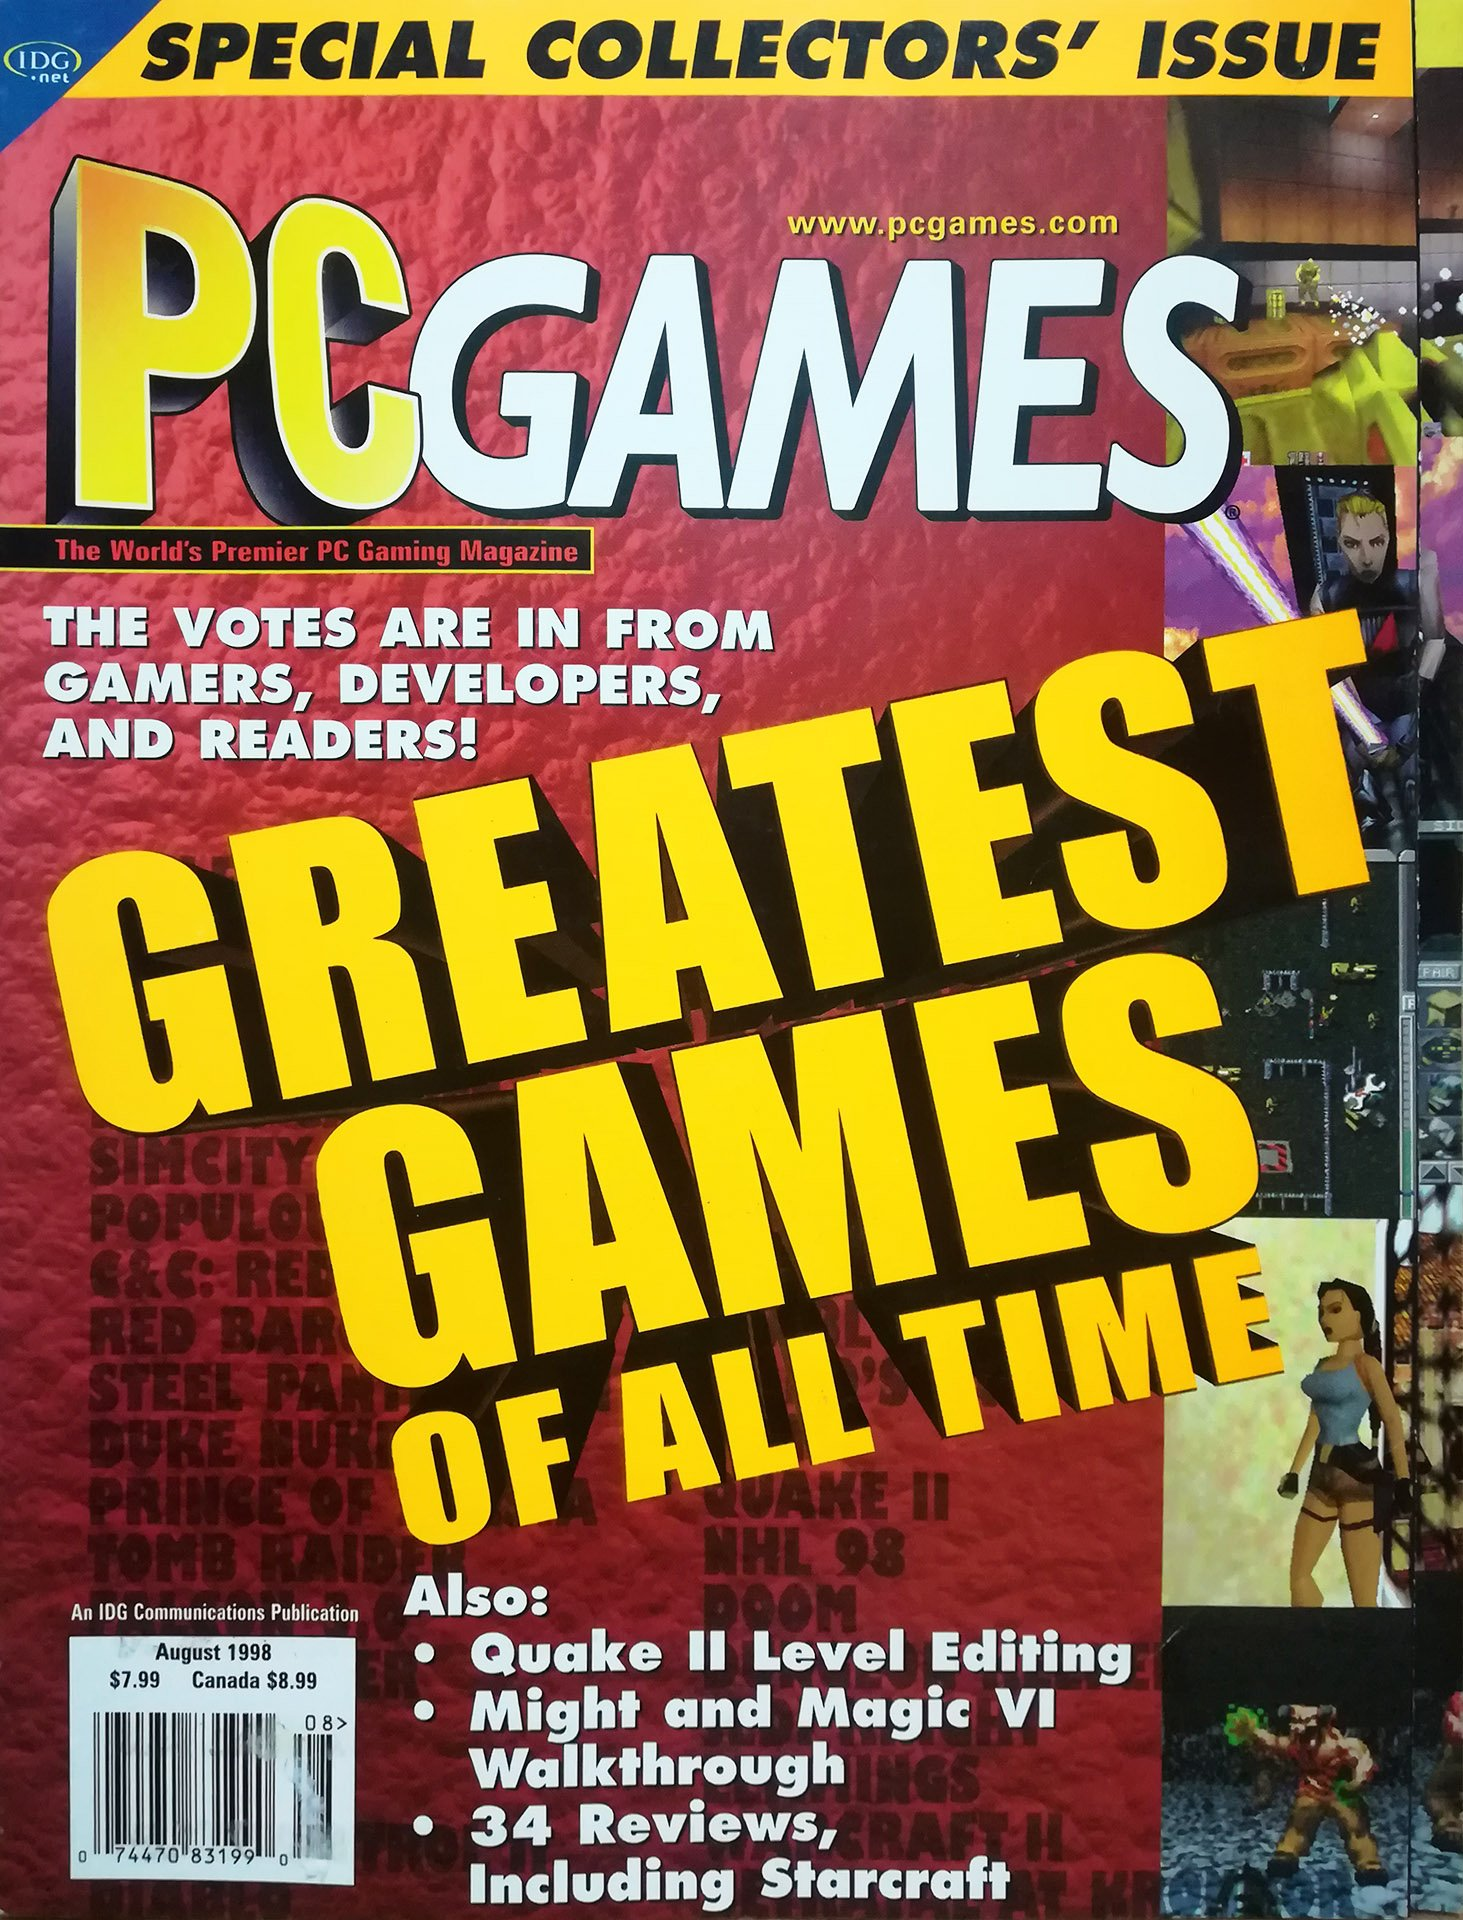 PC Games Vol. 05 No. 06 (July/August 1998)